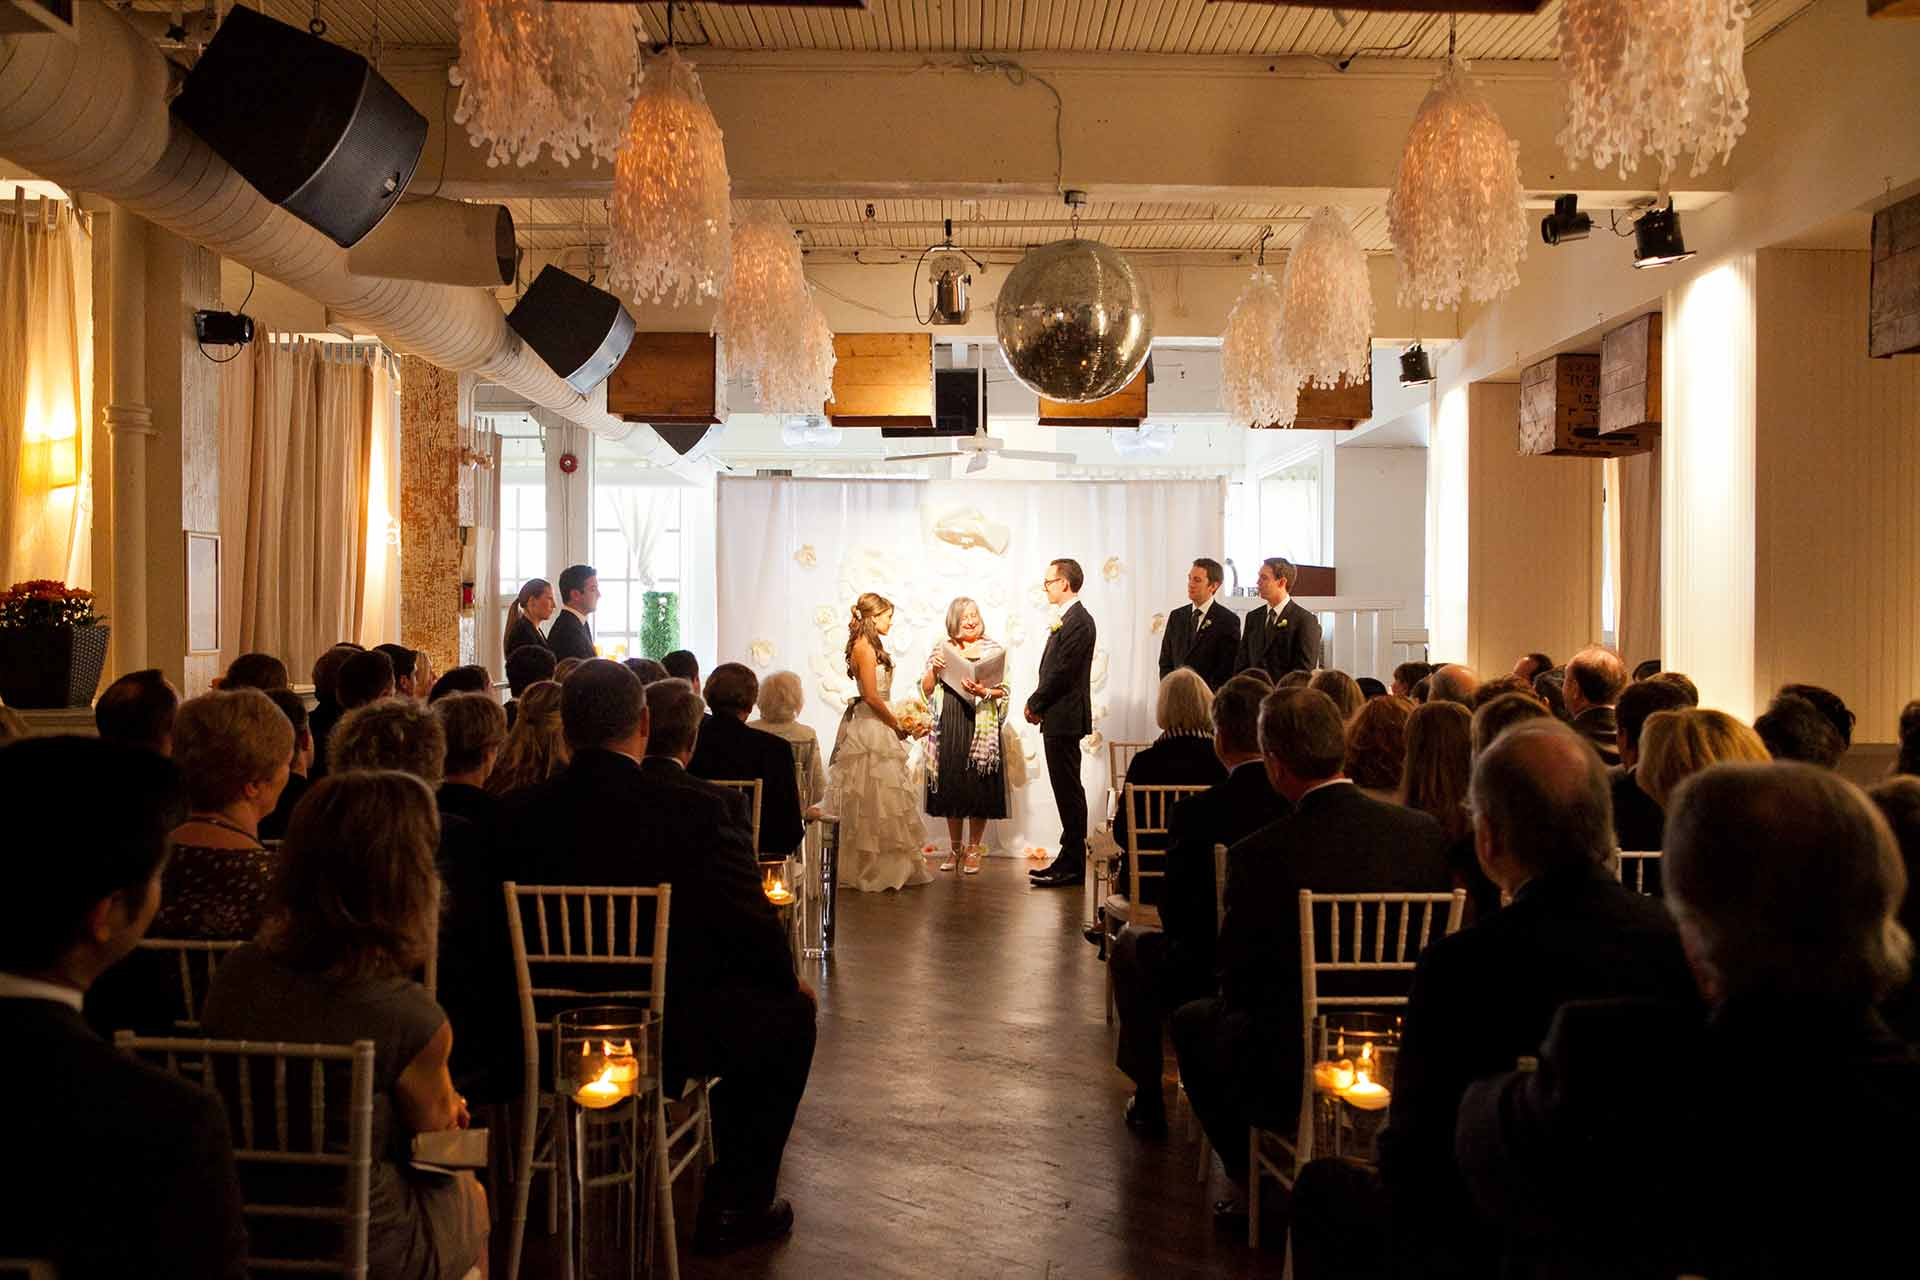 Toronto Wedding Venue - Wedding Ceremony in Urban Loft